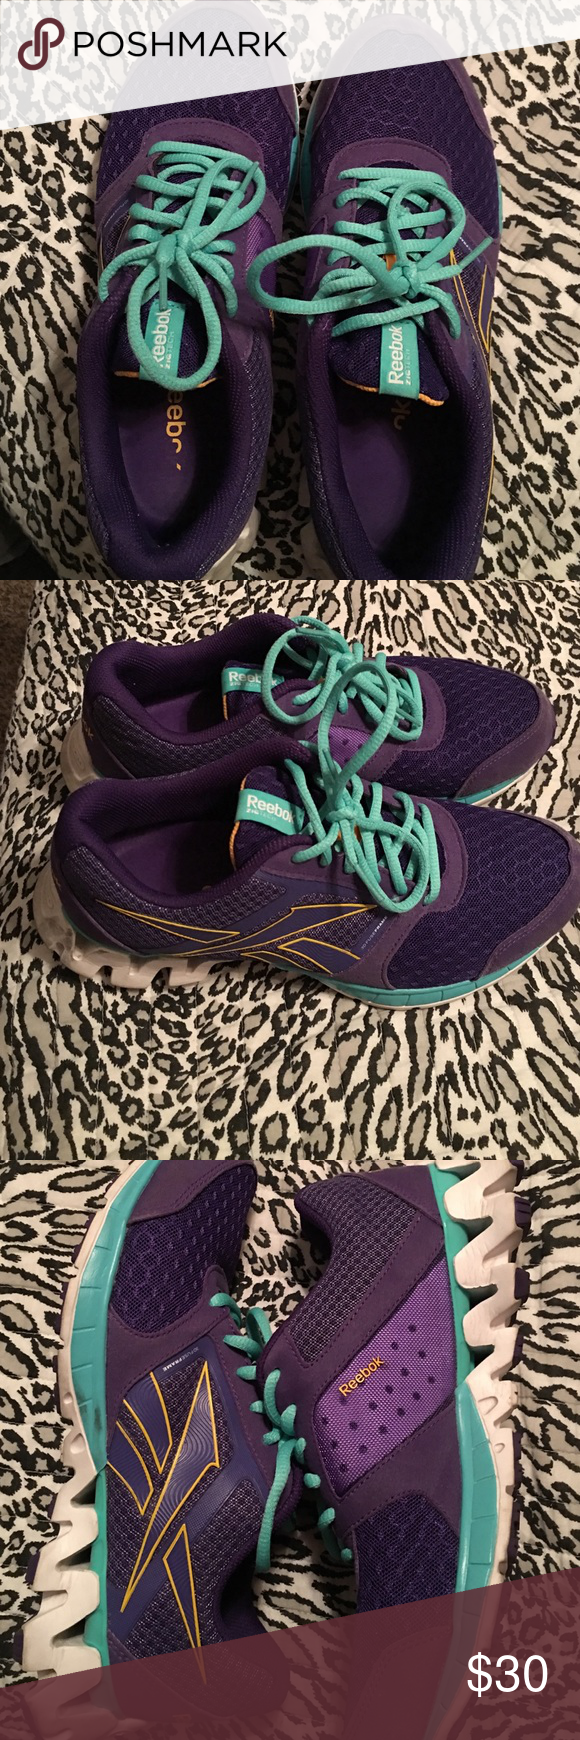 💜💜Reebok Zigtech Shoes Size 8.5 💜💜 💜💜Good Condition 💜💜 Reebok Shoes Sneakers